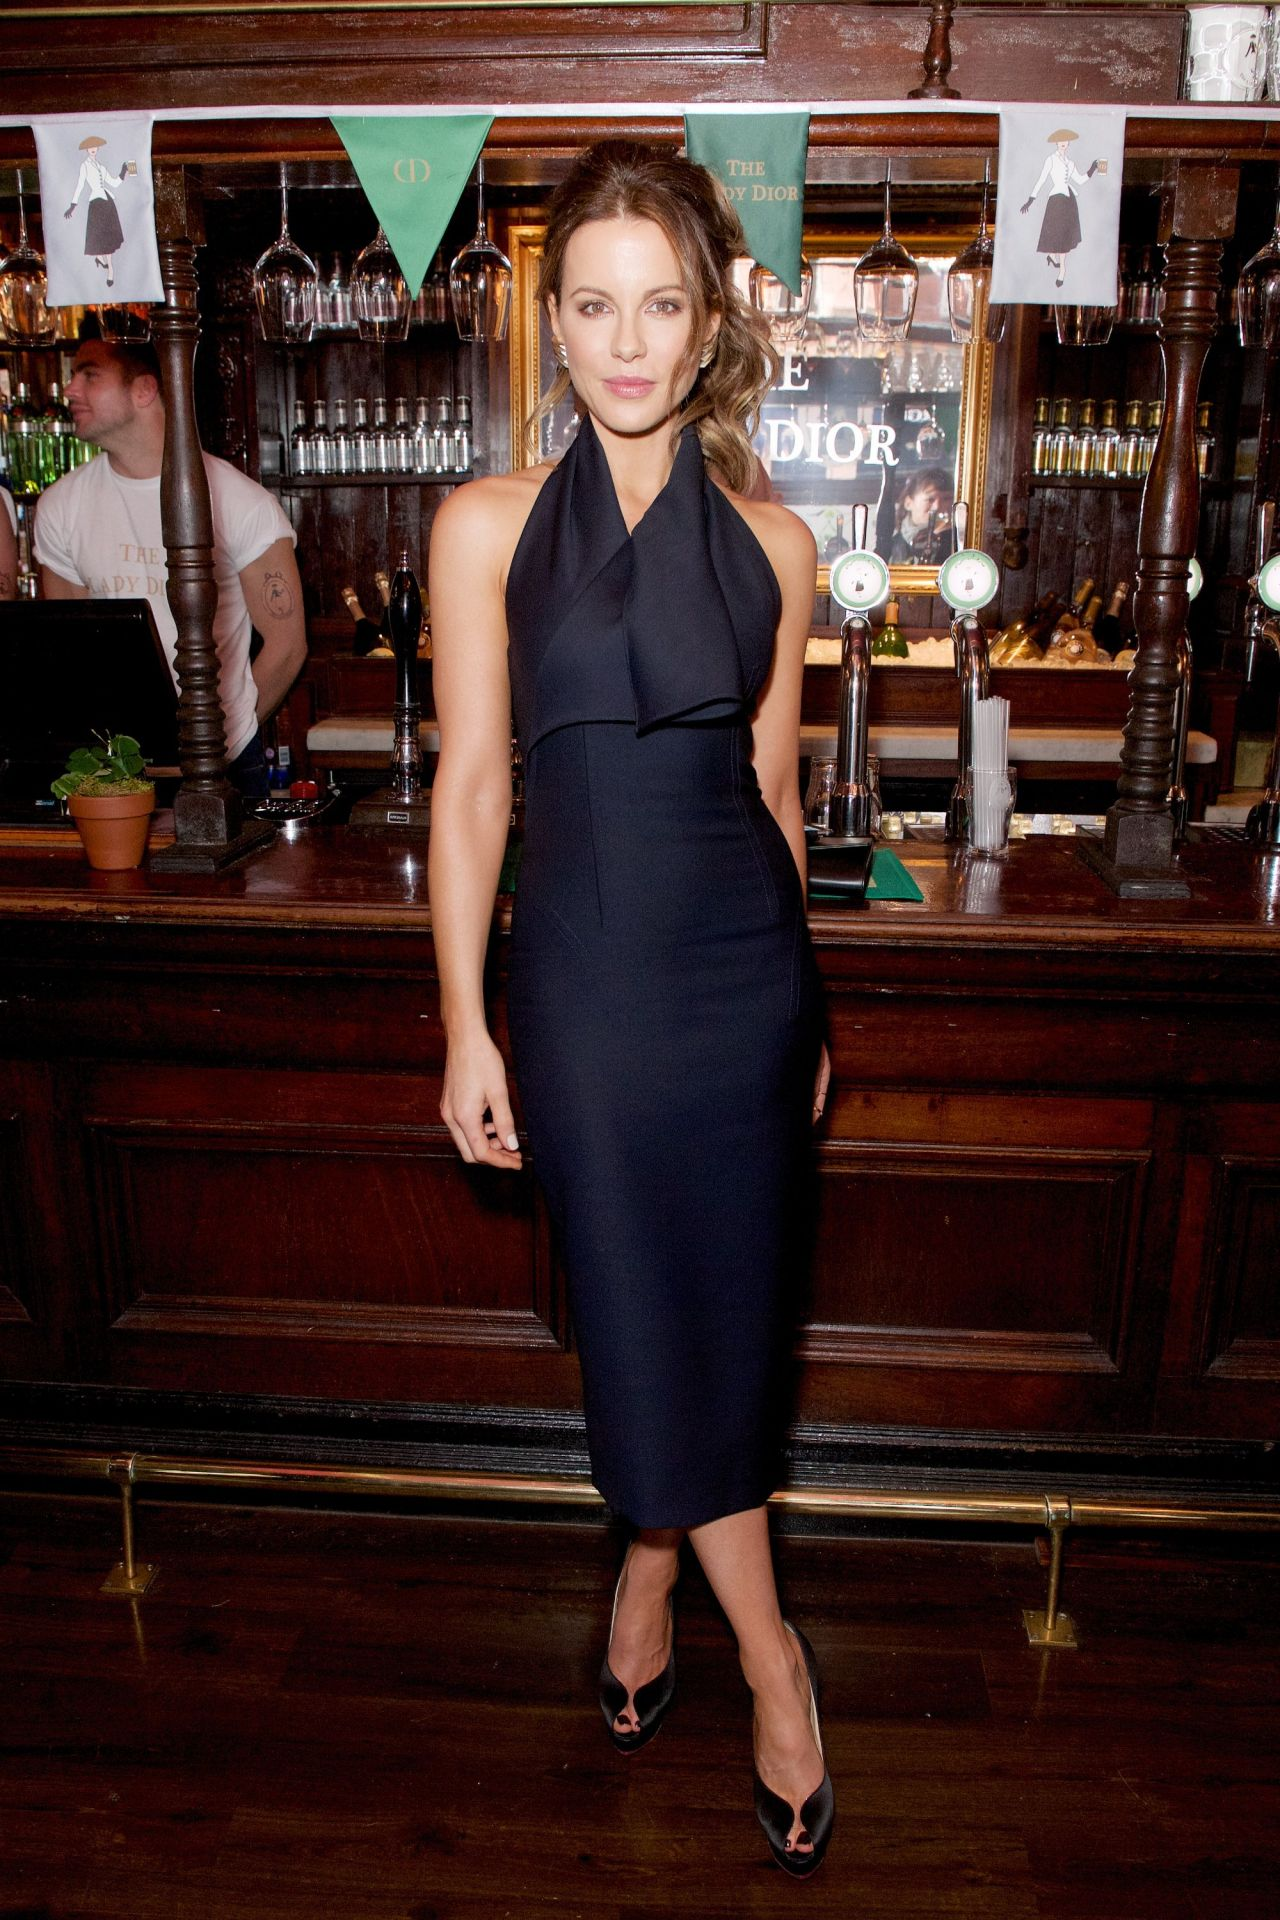 http://www.theplace.ru/archive/kate_beckinsale/img/kate_beckinsale_lady_dior_party_in_london_uk_5_30_2016_7.jpg